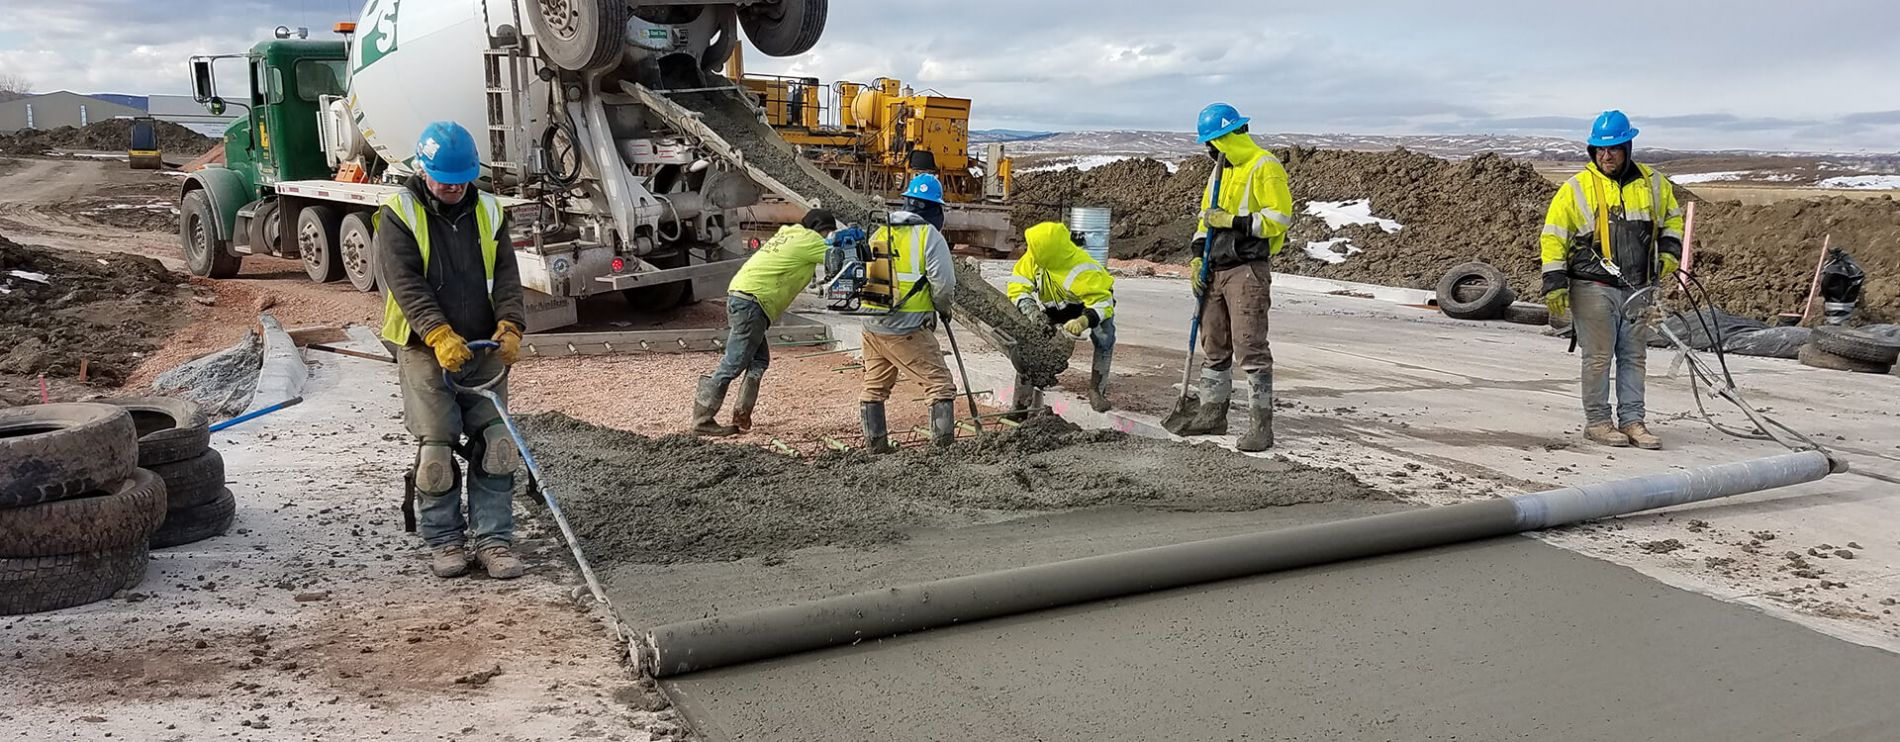 Construction workers at work